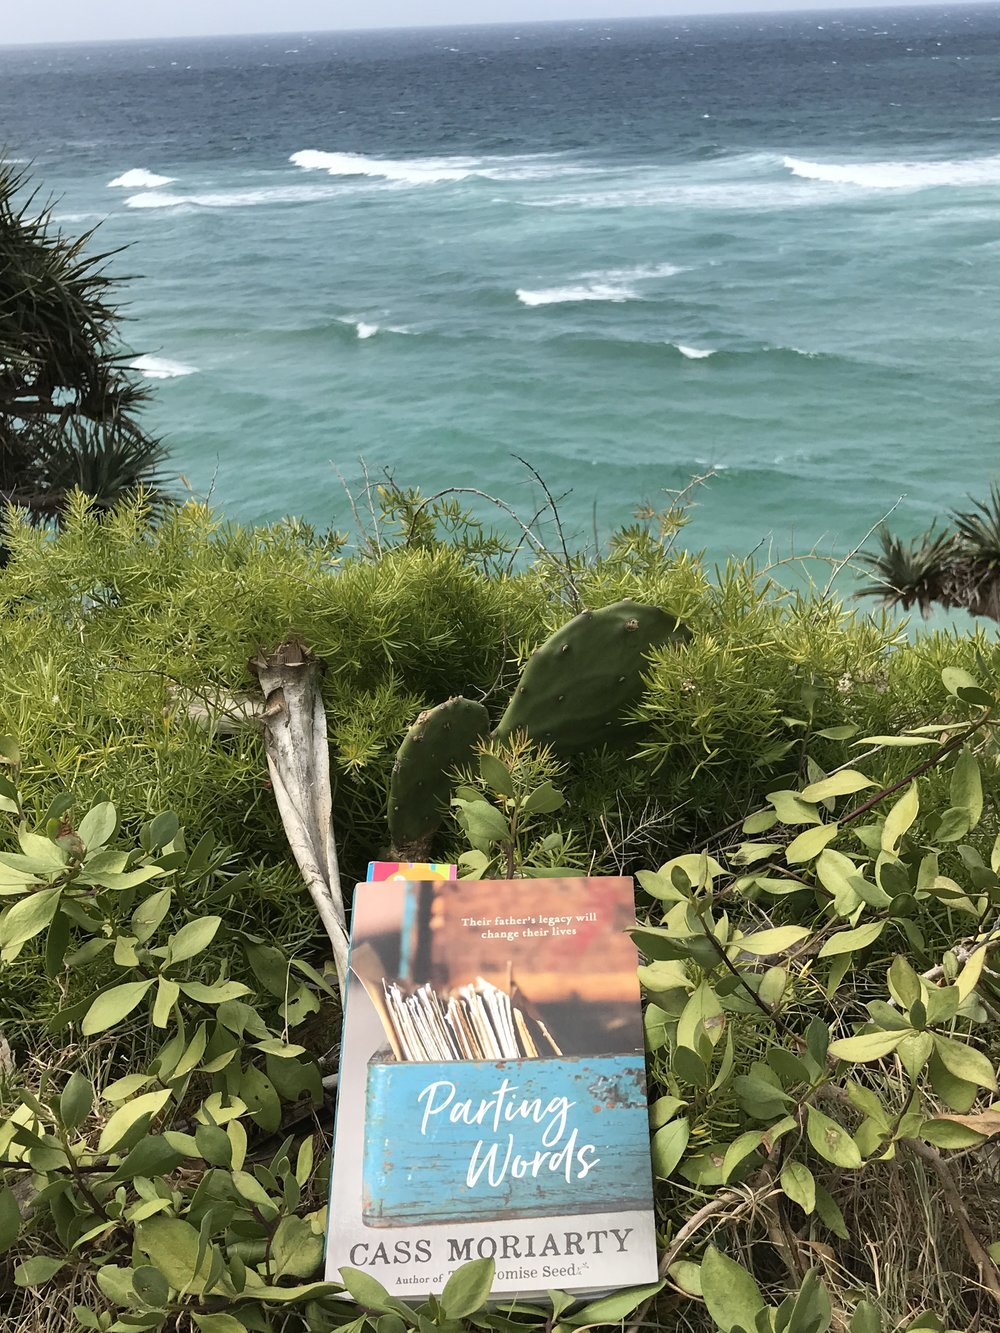 'Parting Words' by Cass Moriarty overseeing Frenchman's Cove at Stradbroke Island. Moriarty's skillfully unfolding family mystery is a perfect and thoughtful holiday read. I couldn't put it down.